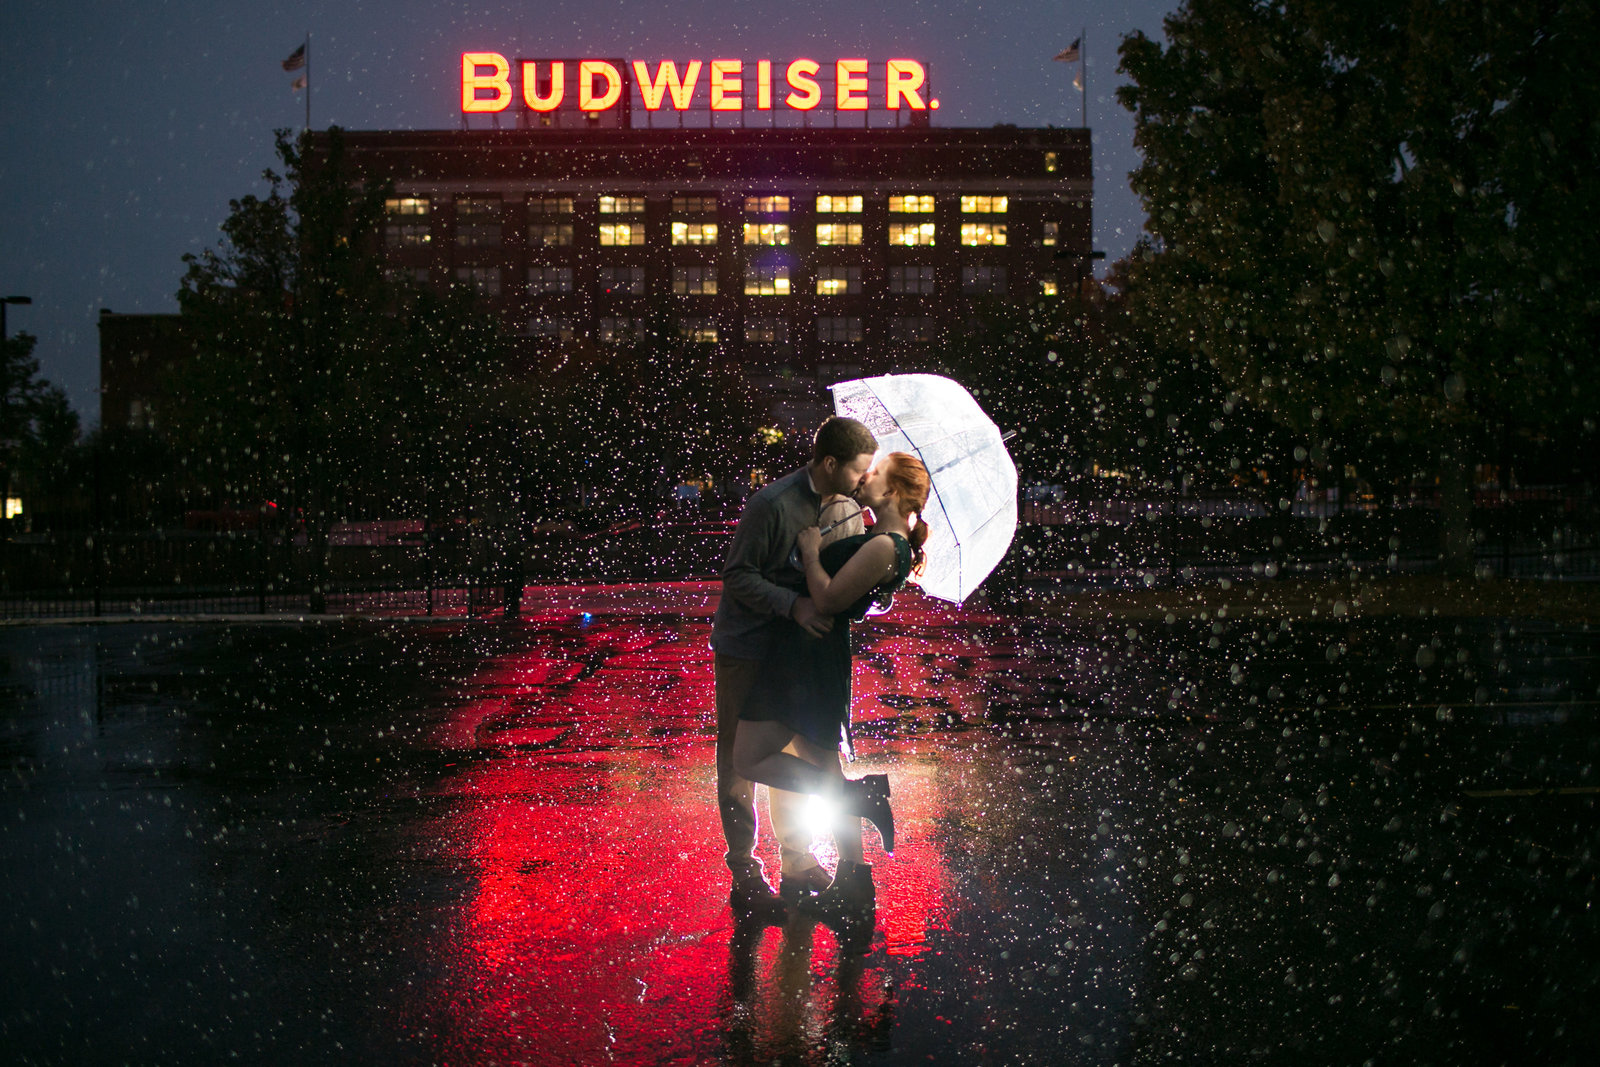 Engagement photo of Kailyn and Adam at night in the rain under a clear umbrella with the Budweiser building in the background.